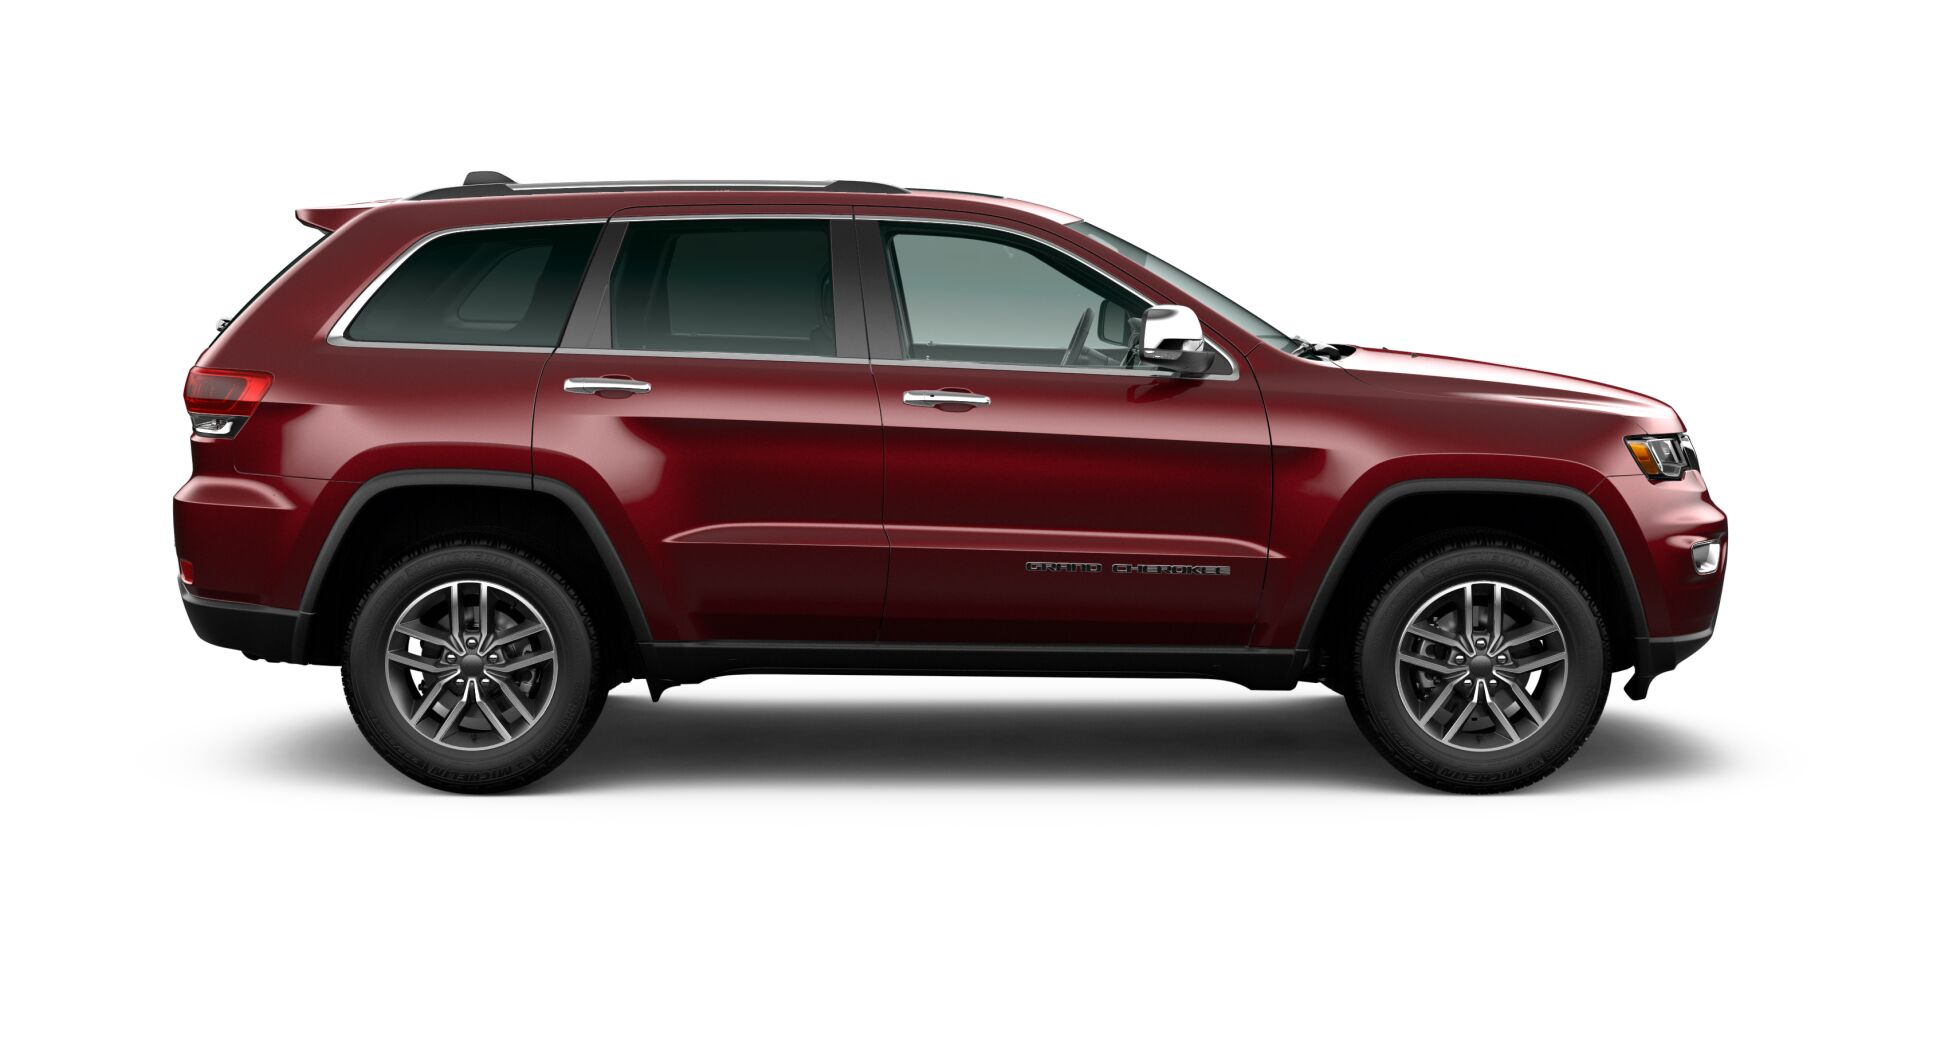 2020 Jeep Grand Cherokee Limited Side View Exterior Red Picture.jfif